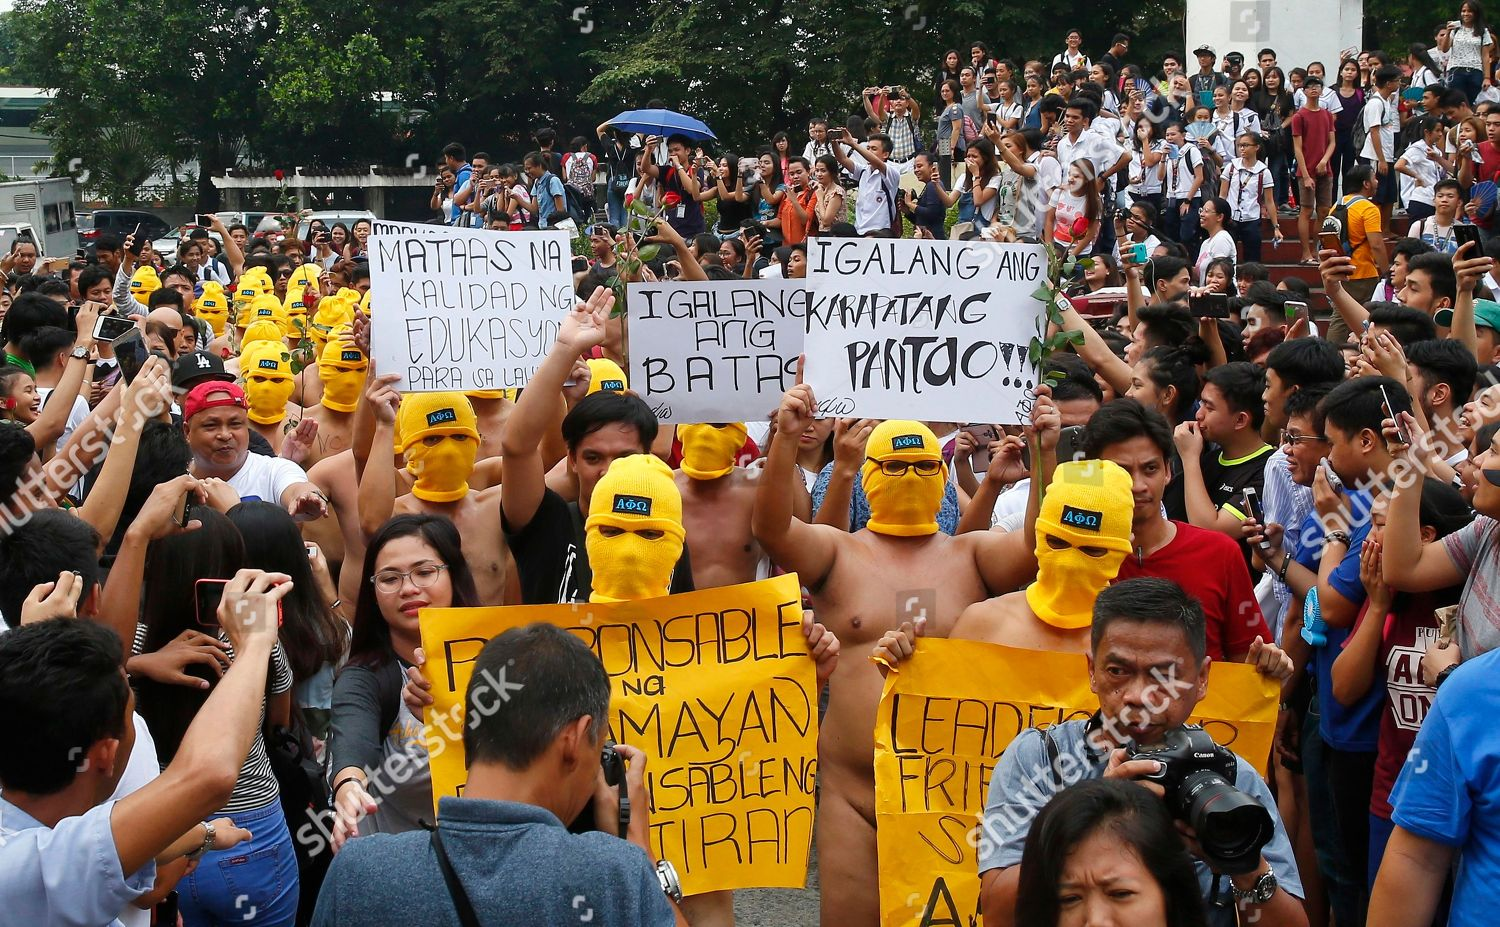 Ang Naked masked studentmembers school fraternity display placards